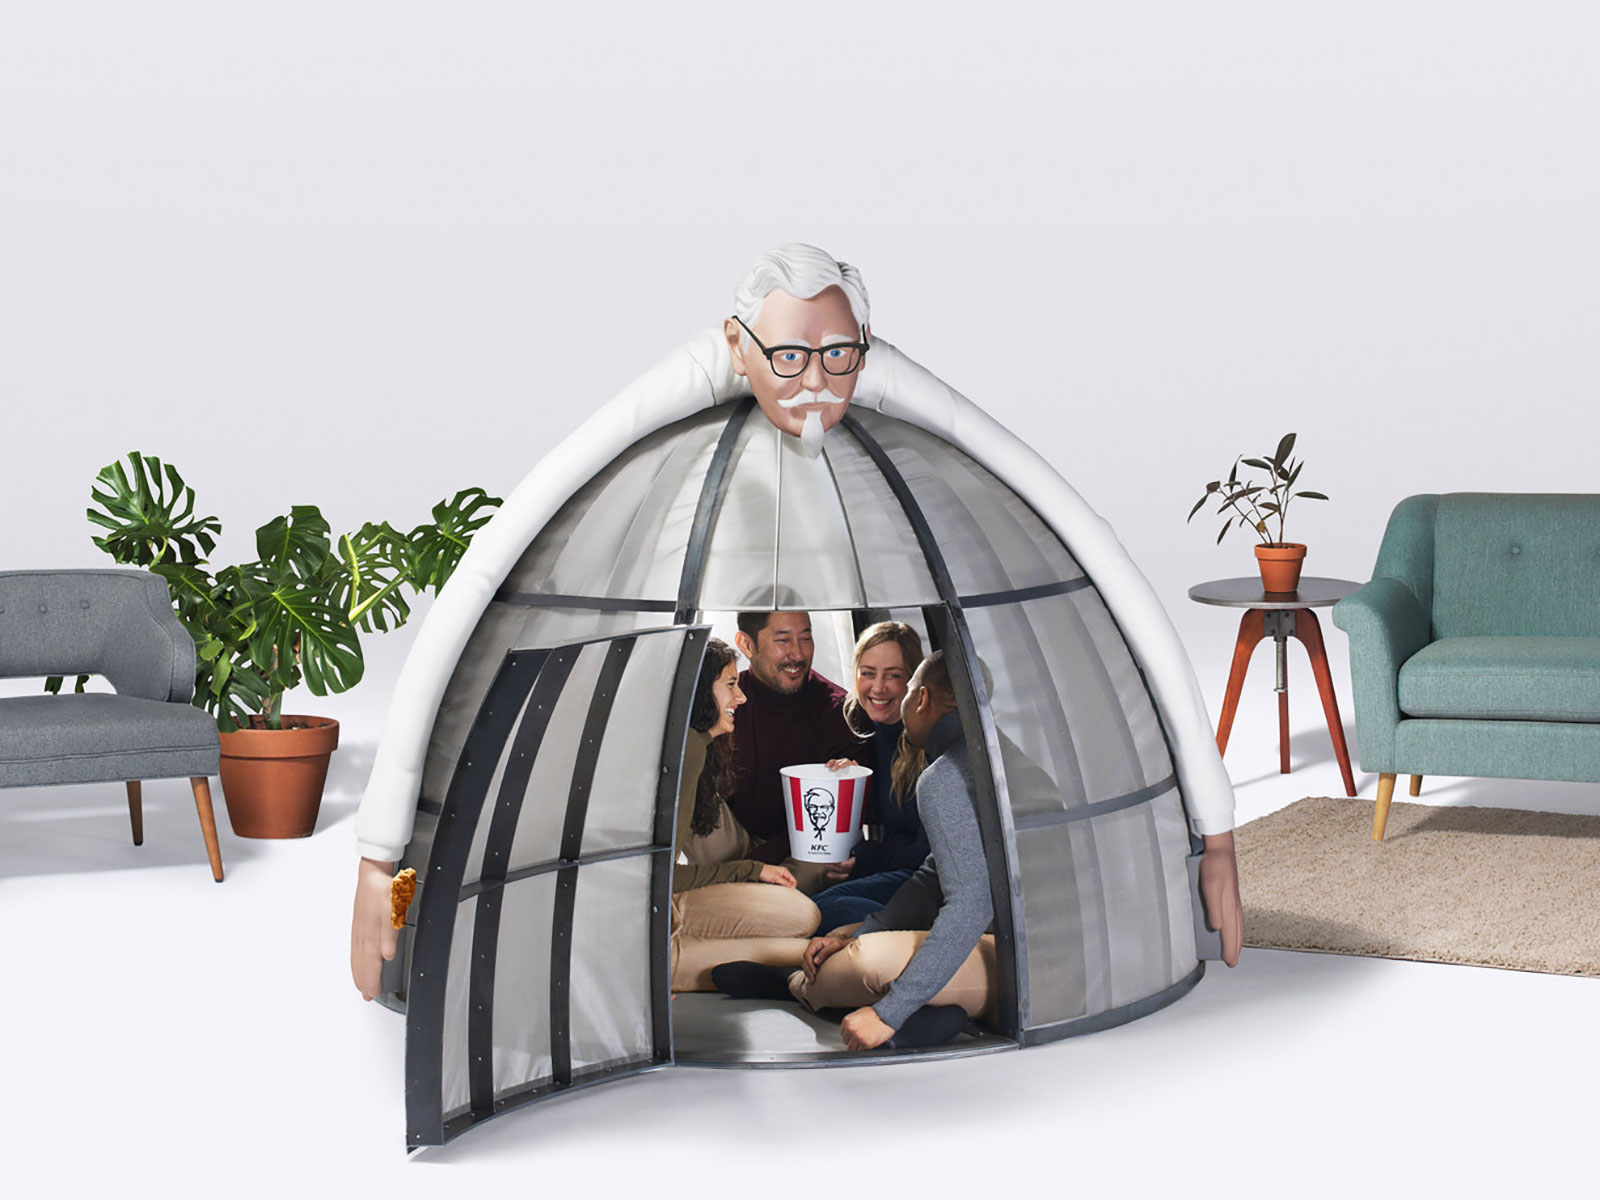 KFC Is Selling a $10,000 'Internet Escape Pod' to Save You from the Holiday Shopping Season